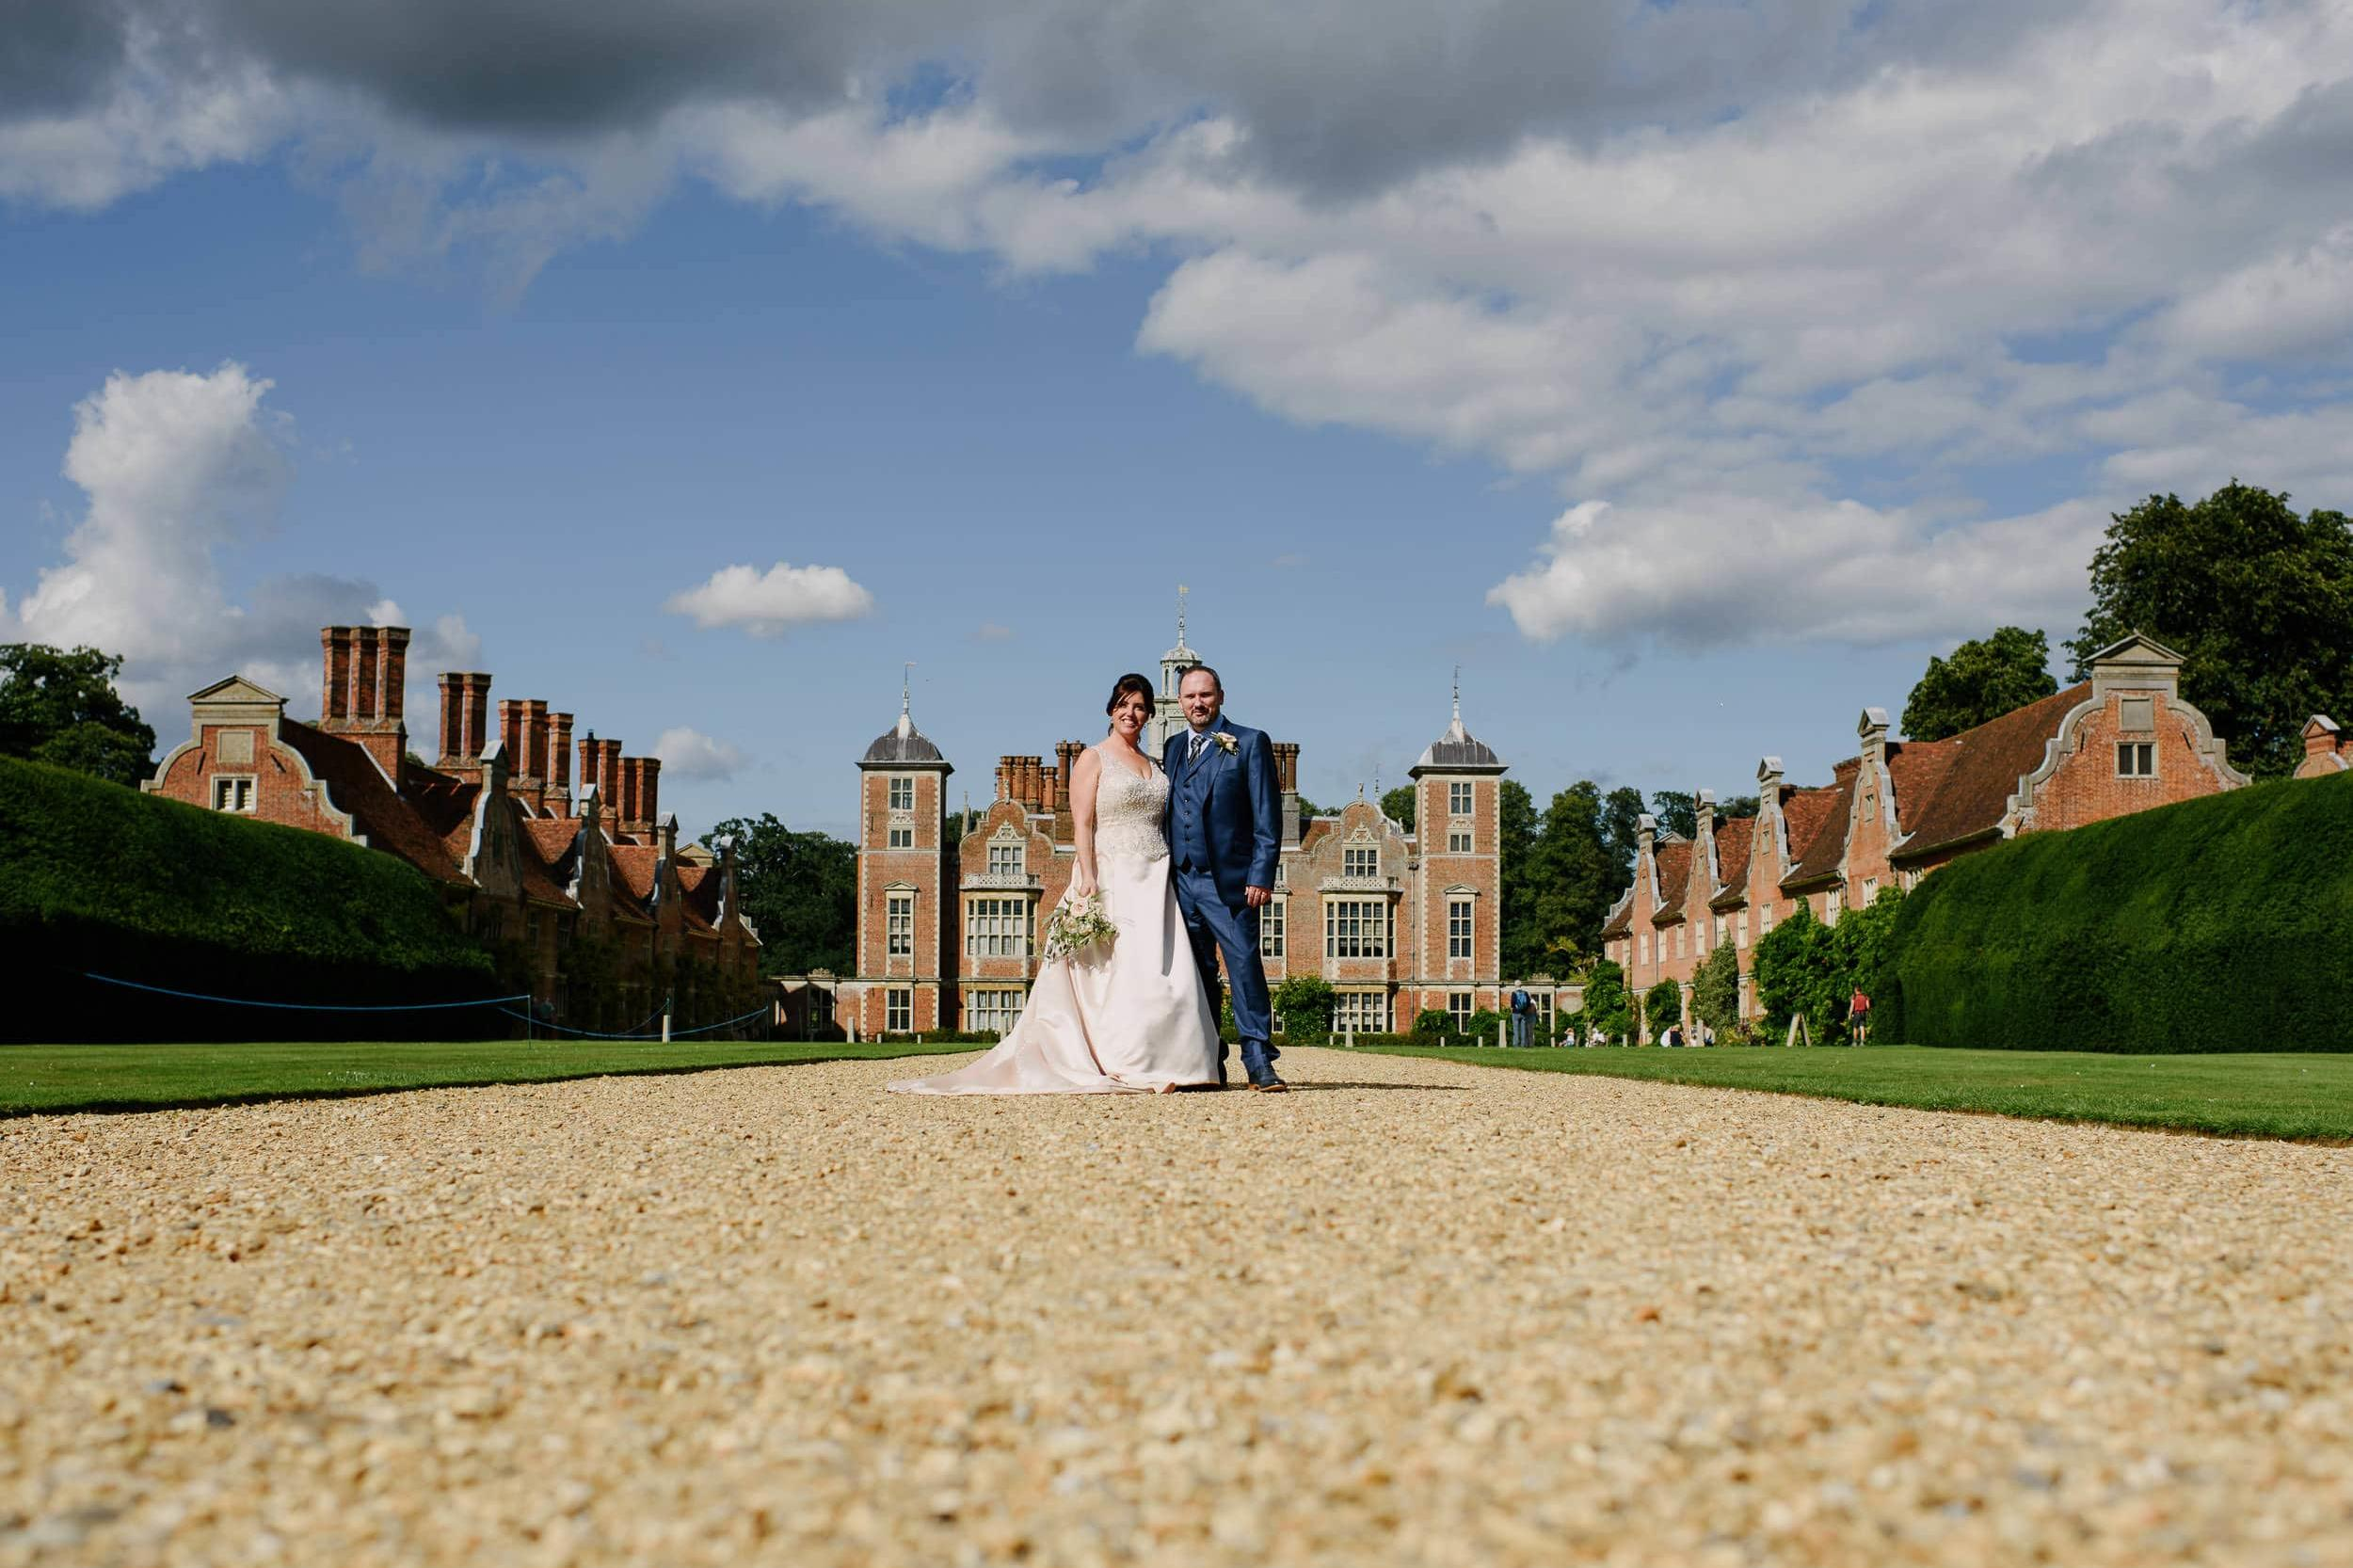 Suzy & Mike - Blickling Hall Wedding 13